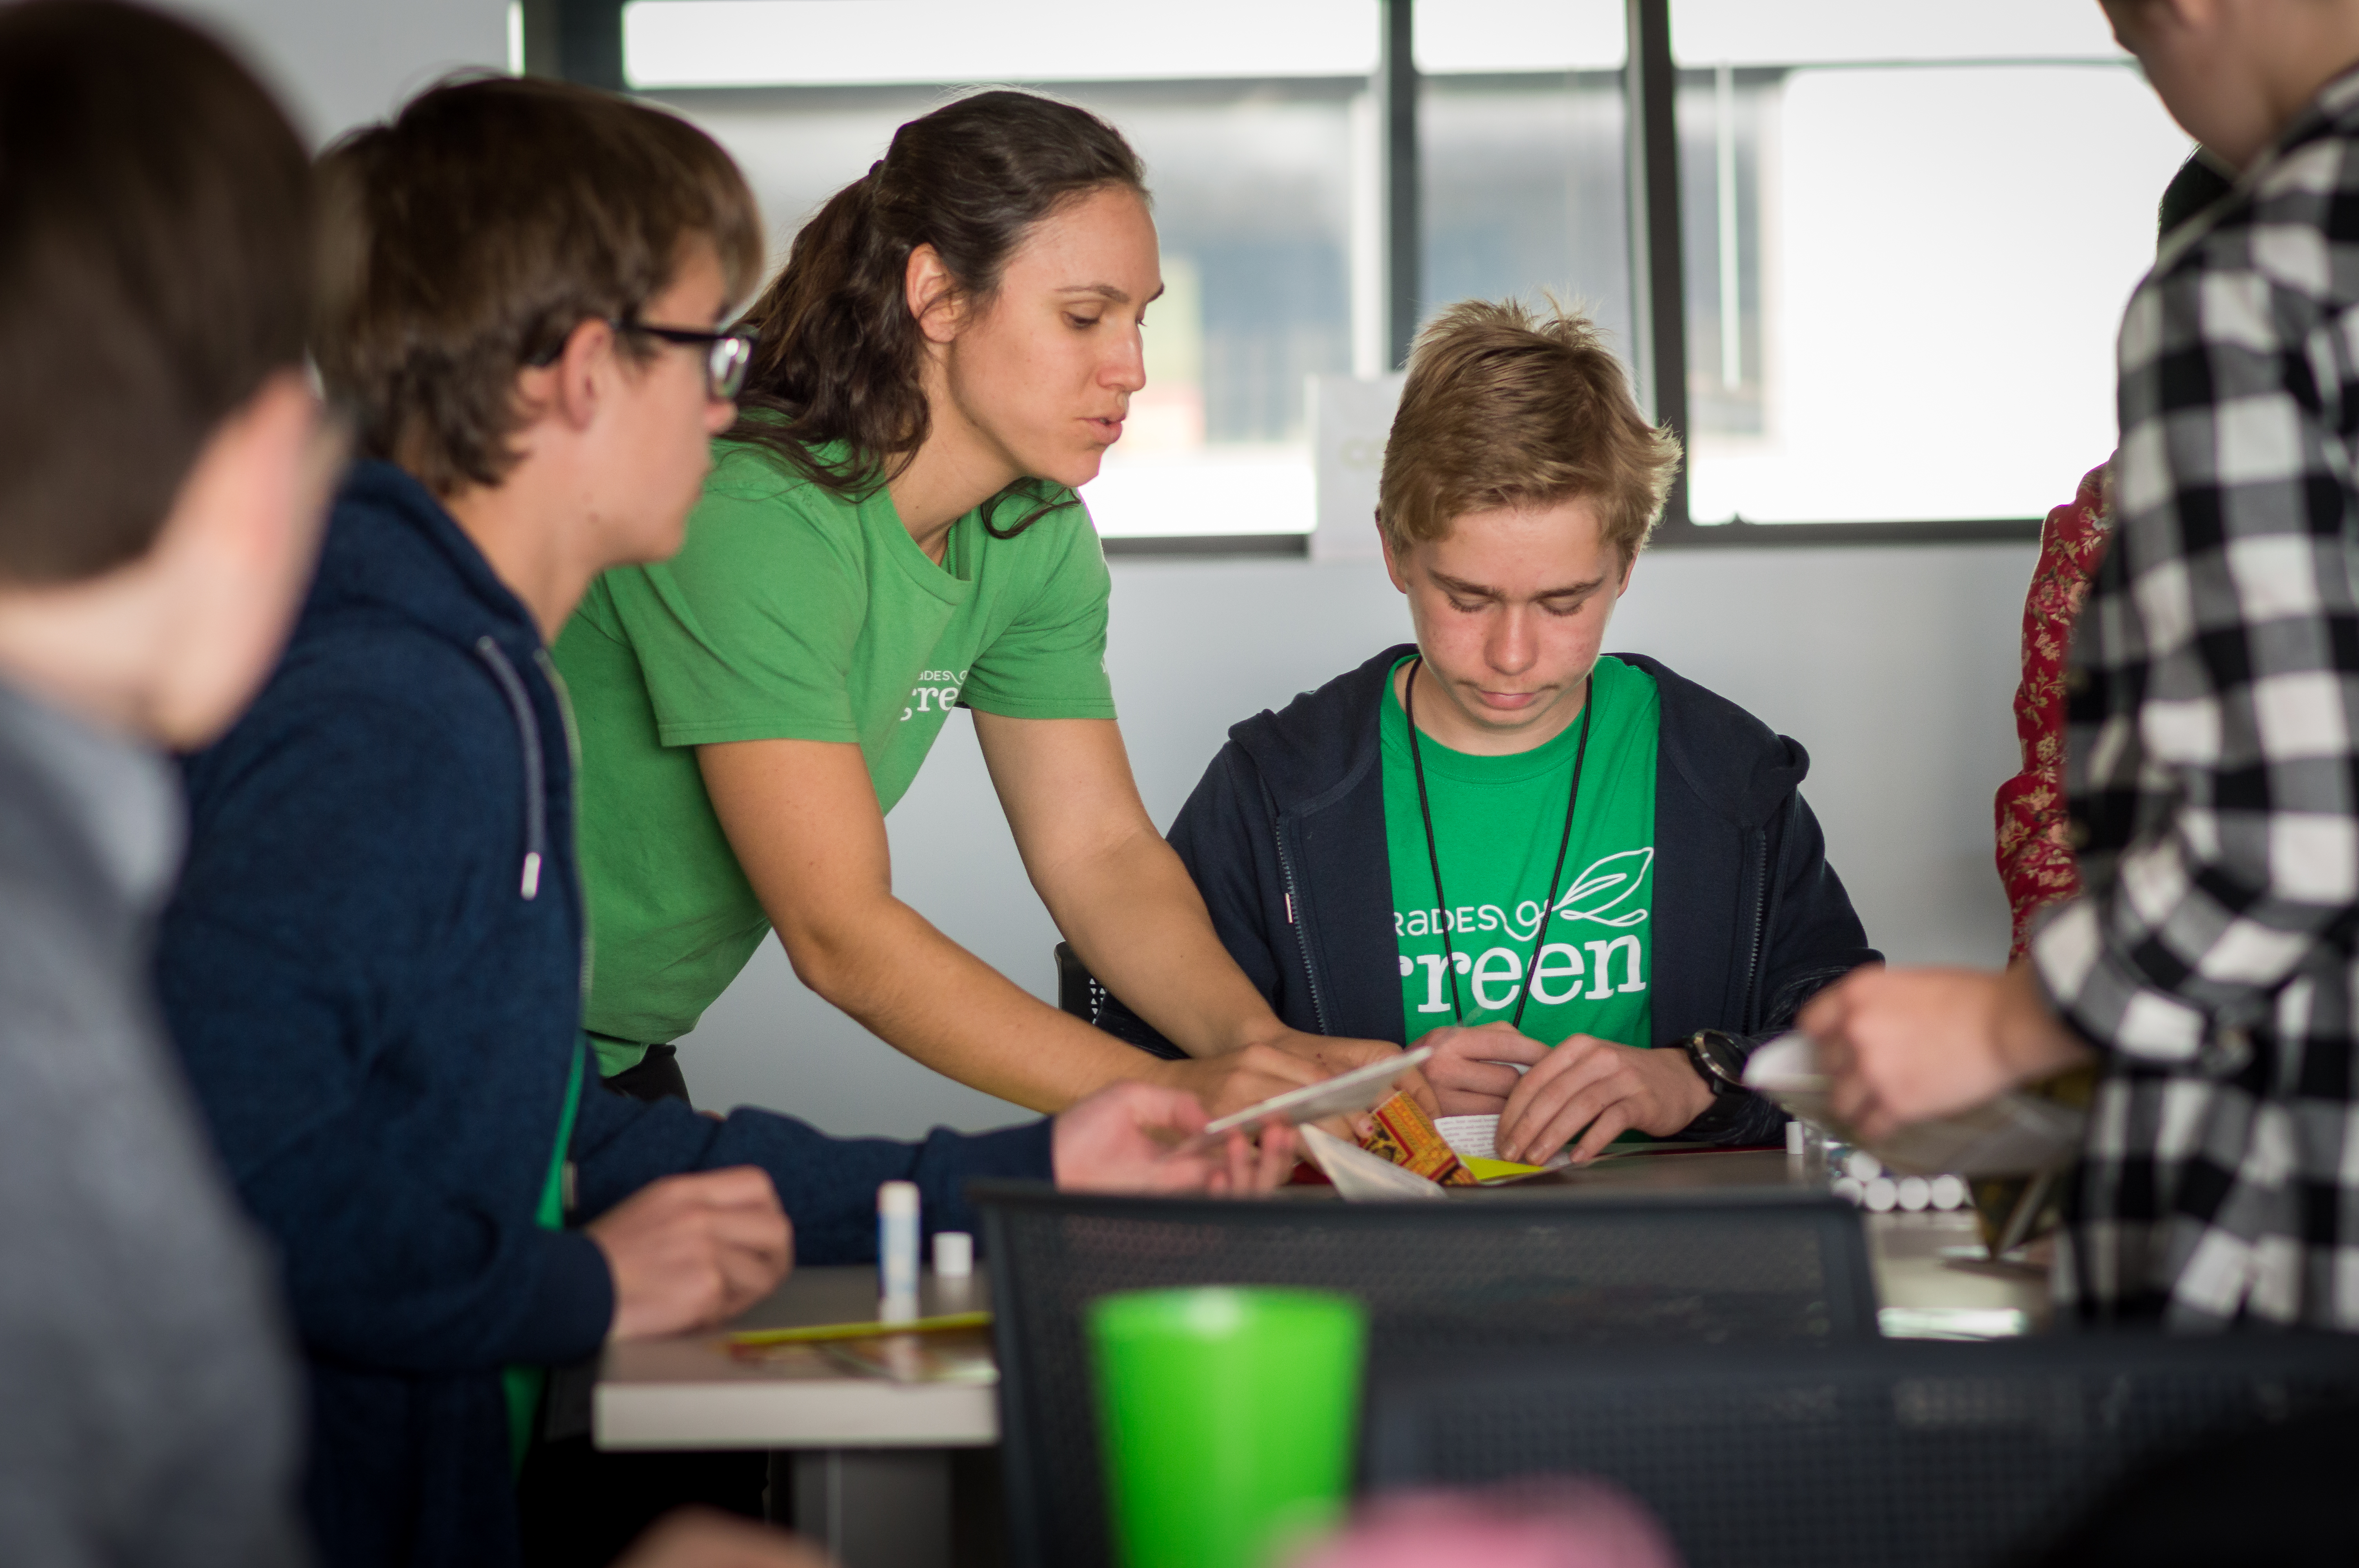 Apply to be a Grades of Green's Spring 2019 College Mentor